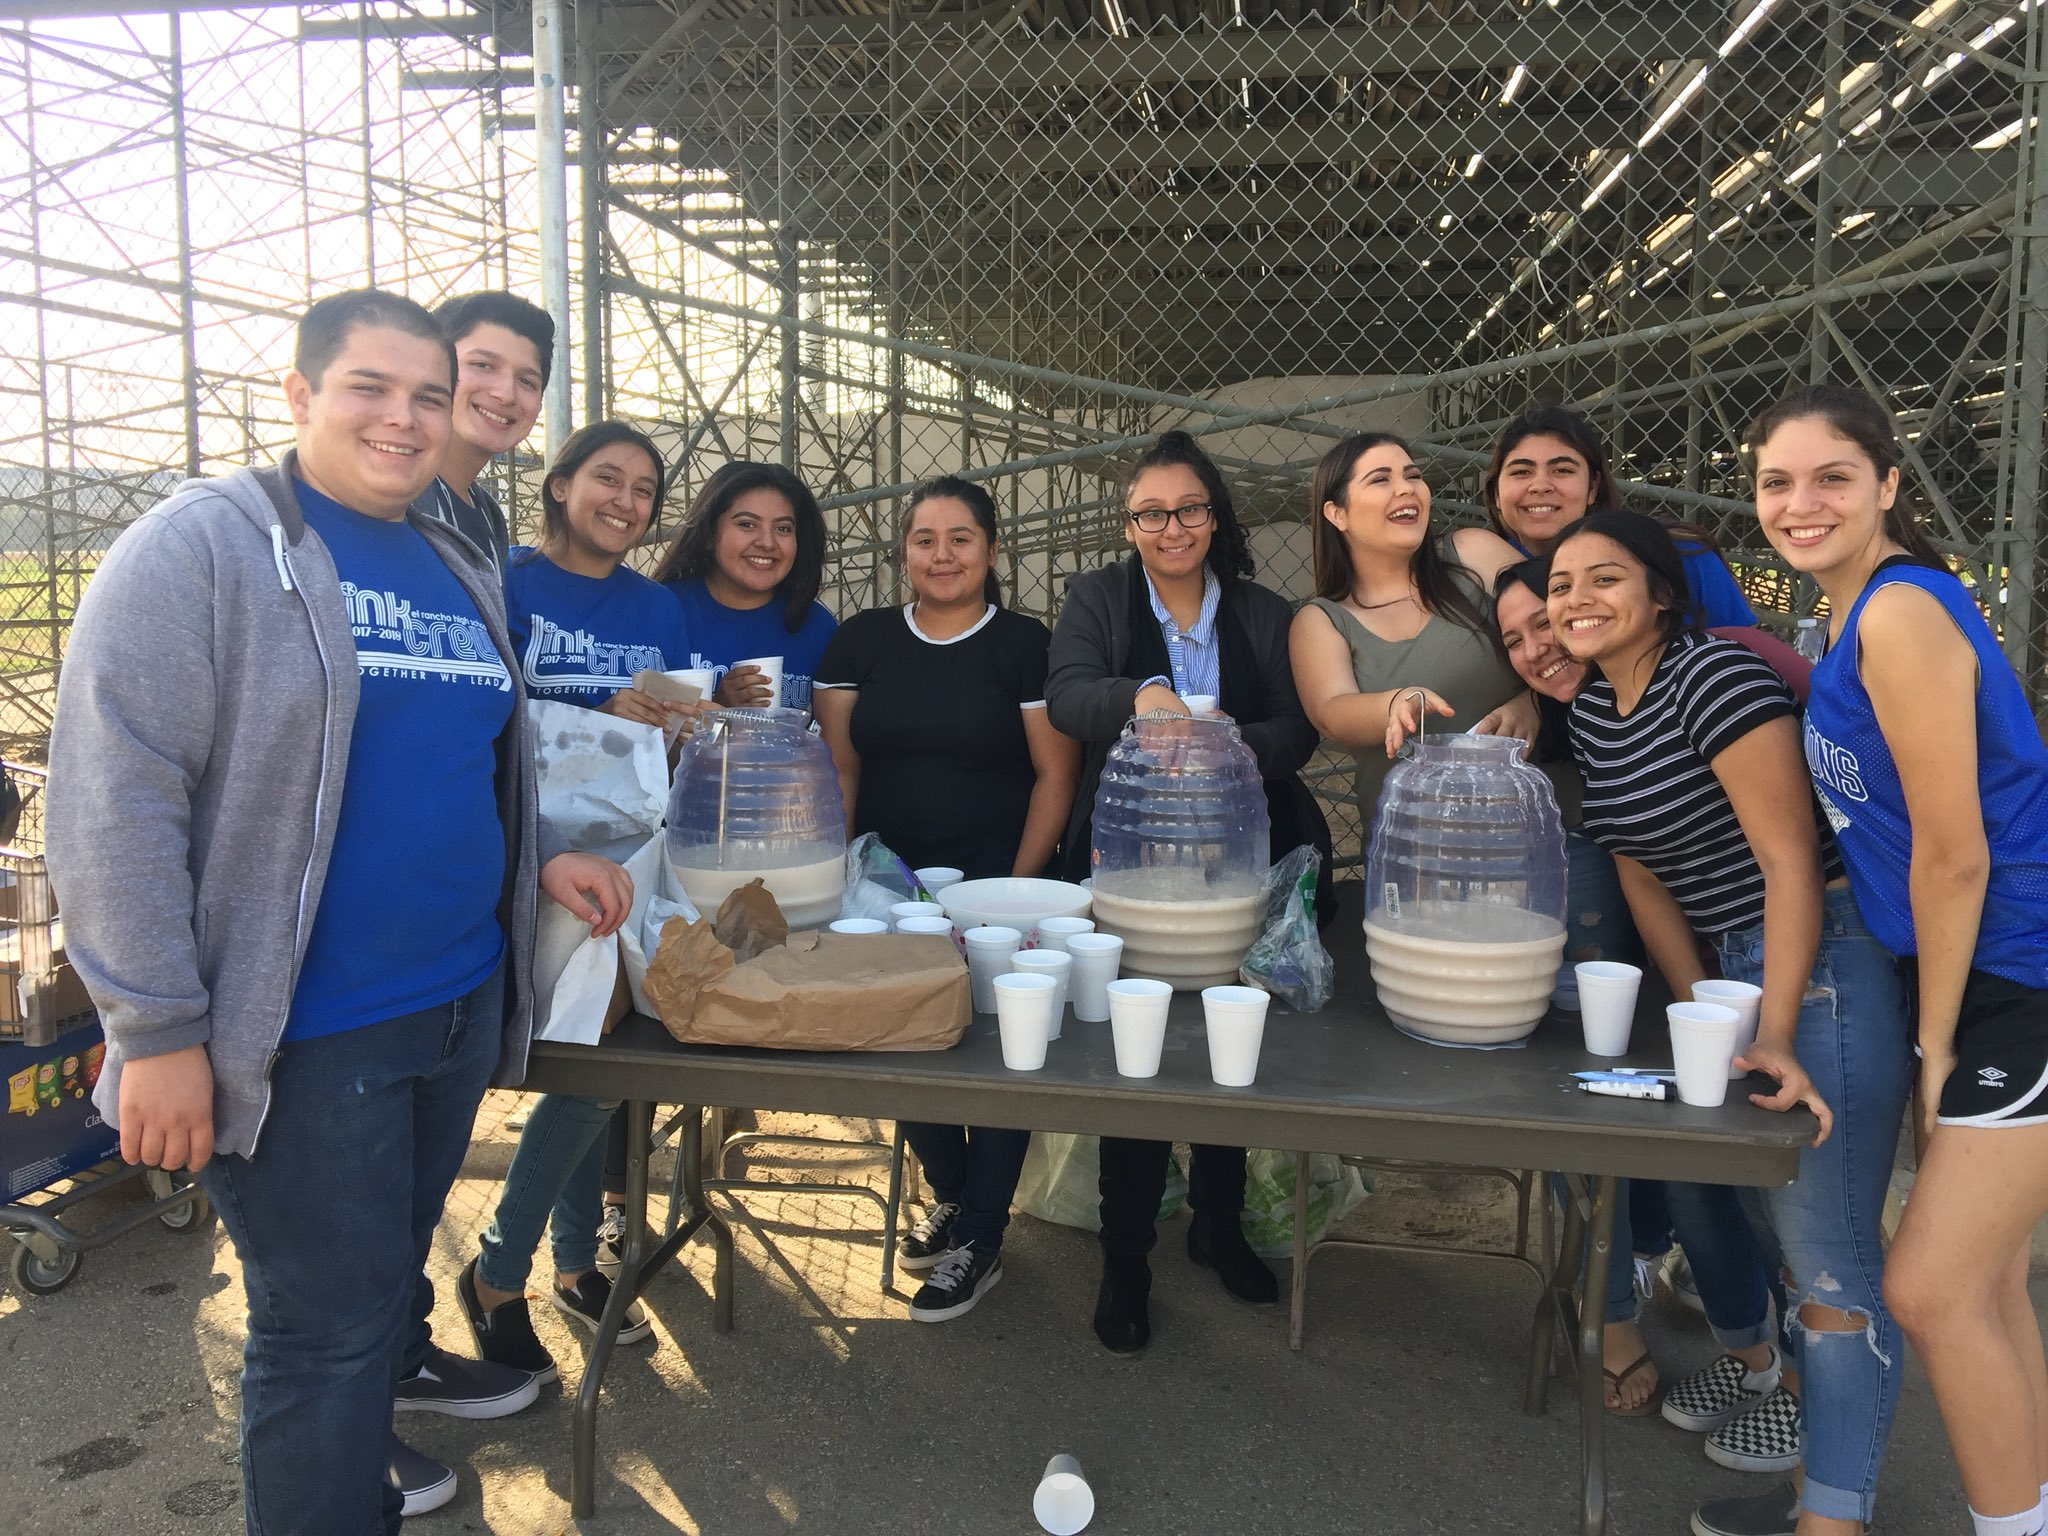 Link Crew showing �� for our 9th graders! Free churros and horchata at the Freshman Football game @ERHSLinkCrew https://t.co/qm2z7R88FL